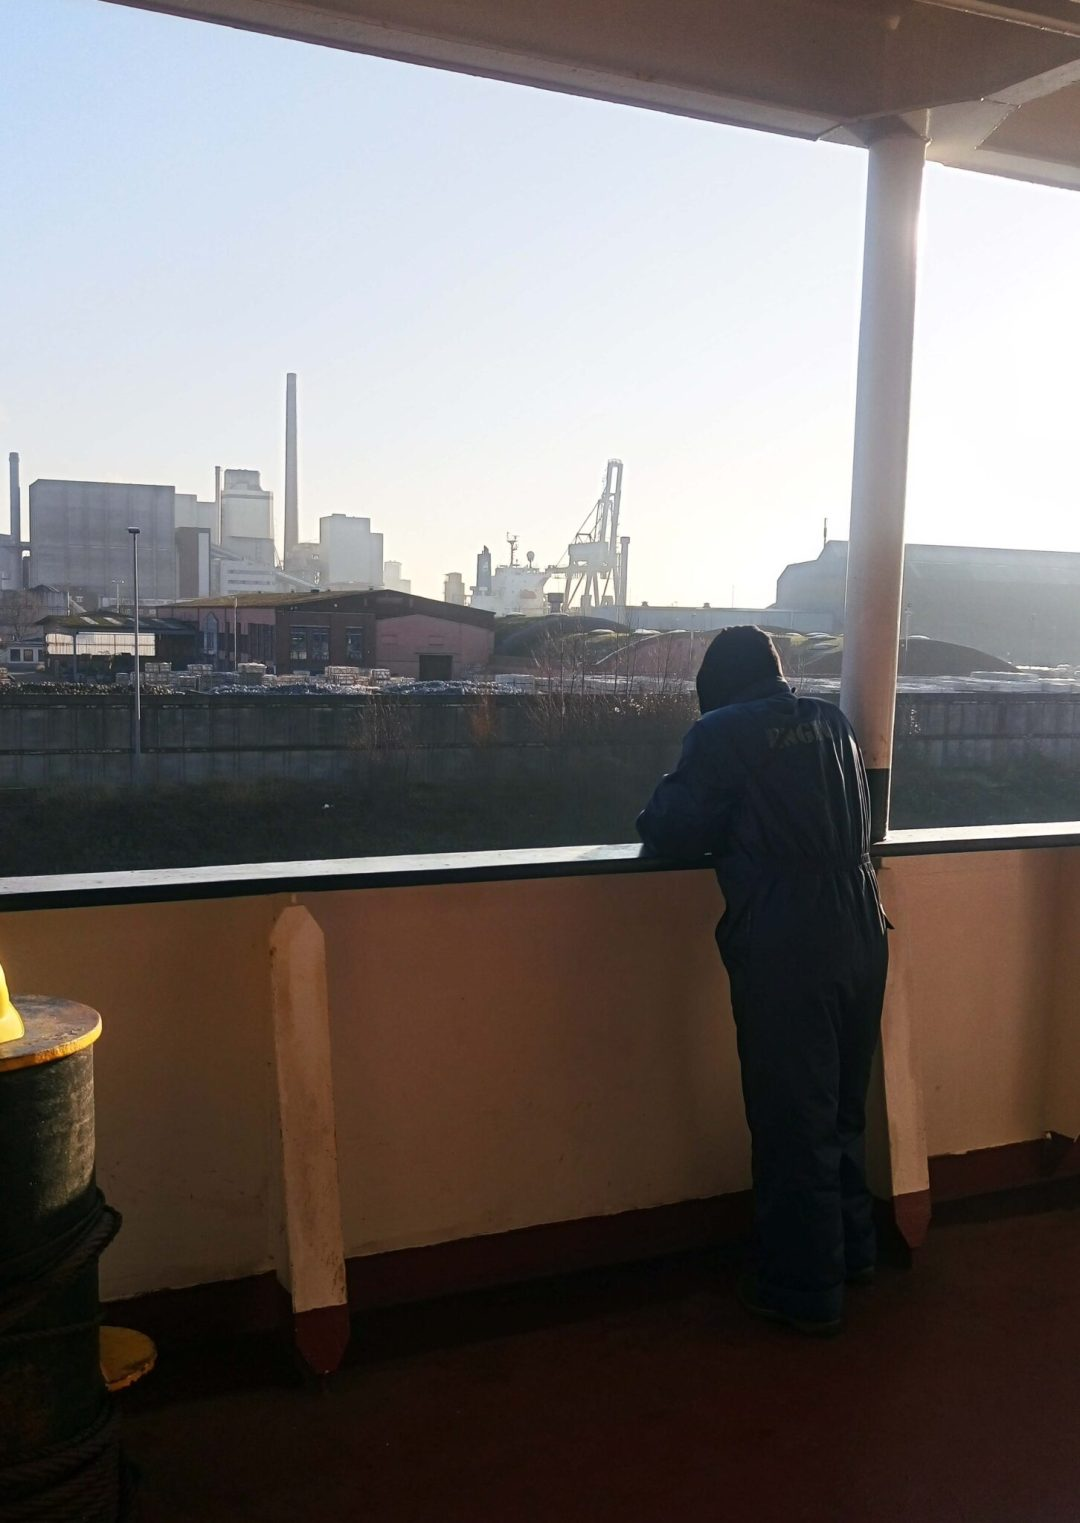 Seafarer in the ship's side watching the waters.